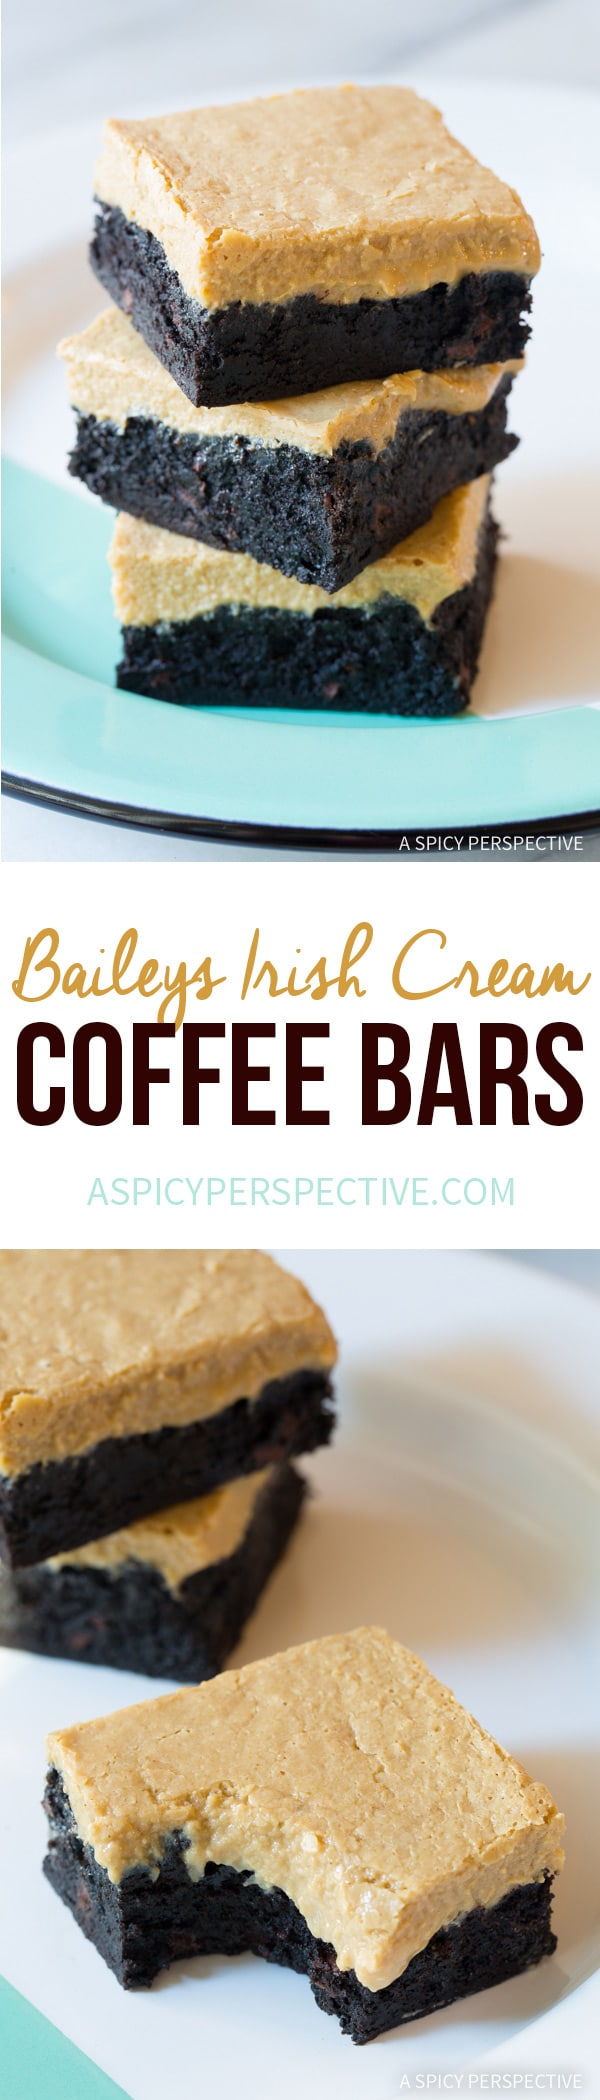 Baileys Irish Cream Coffee Bars for Saint Patrick's Day!